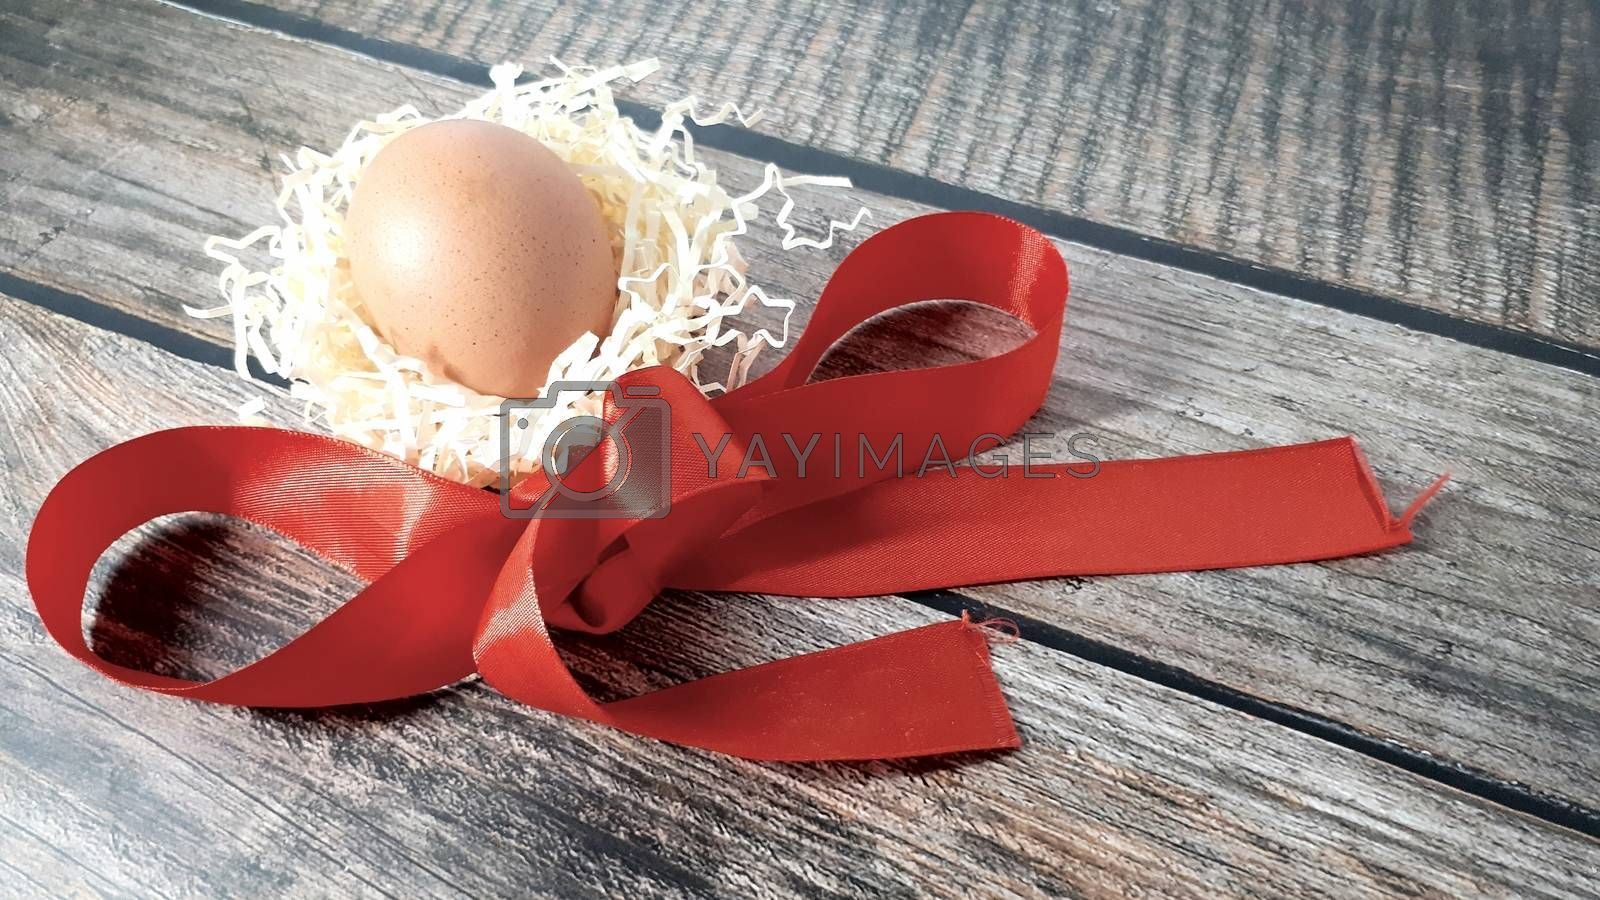 Chicken egg in a nest of straw and red satin ribbon on a wooden table. Close-up.